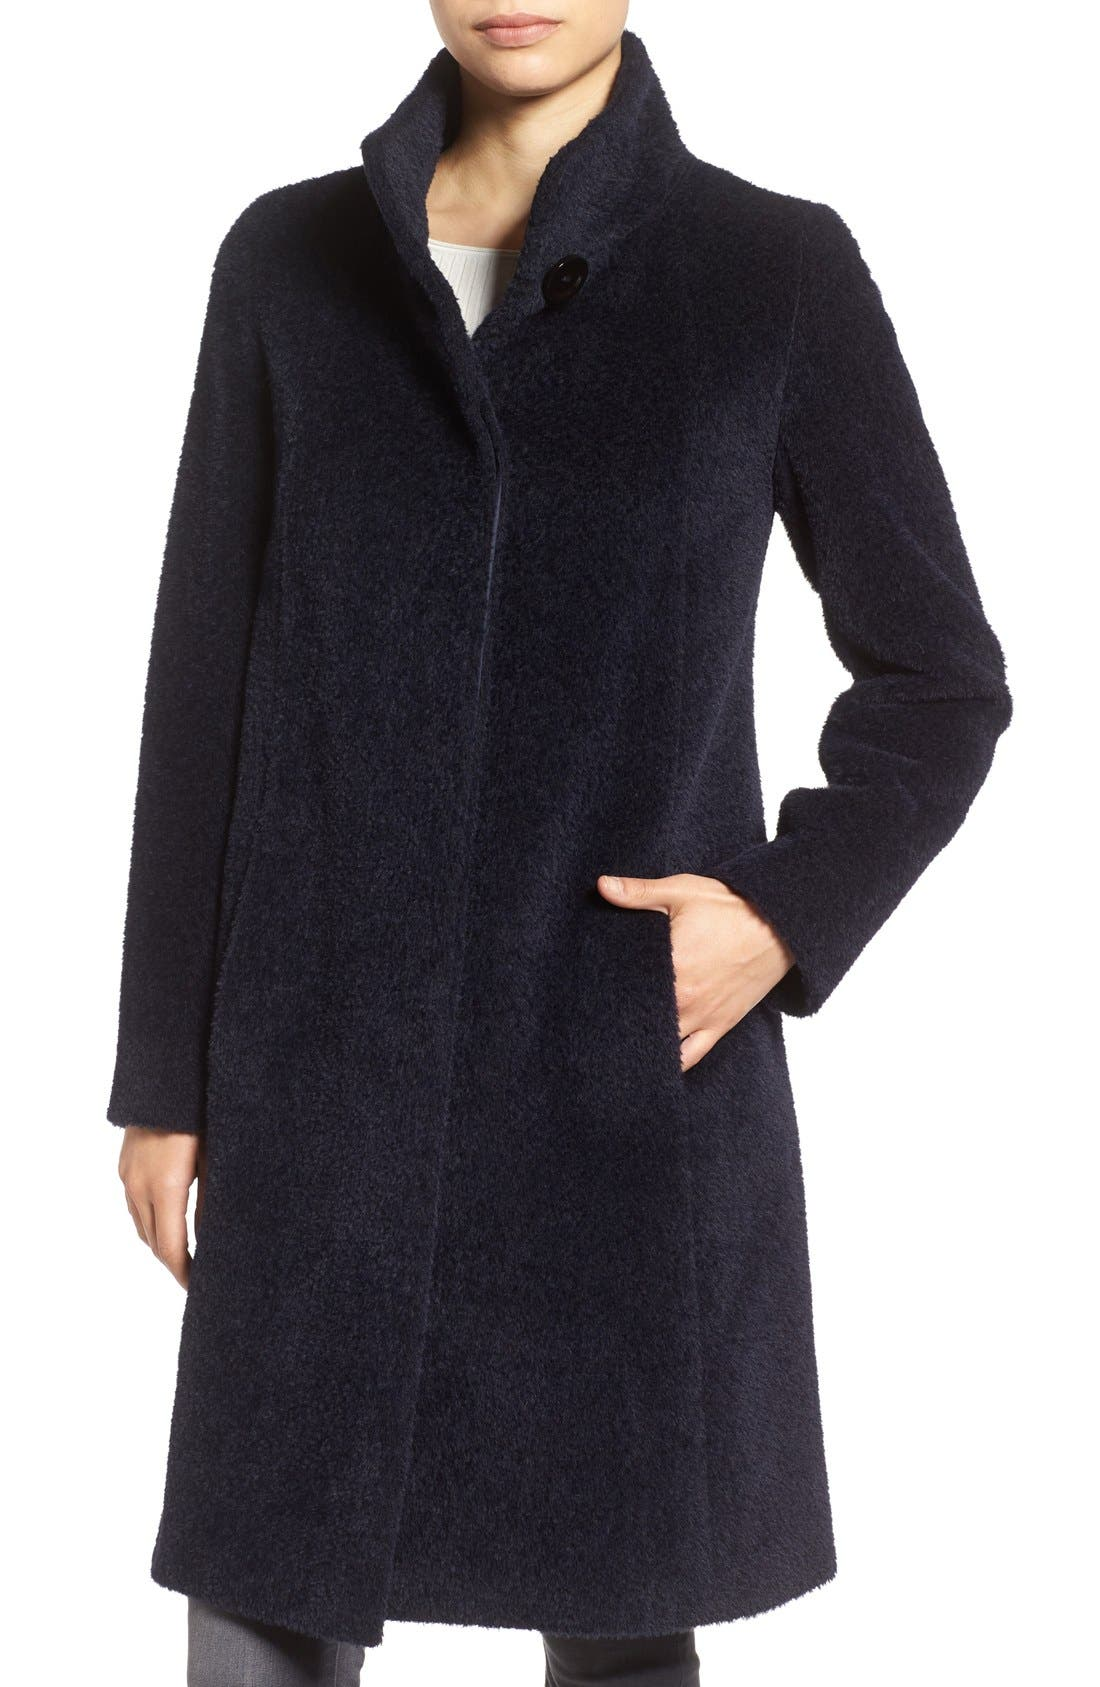 Alternate Image 1 Selected - Cinzia Rocca Icons Stand Collar Wool & Alpaca Long A-Line Coat (Regular & Petite)